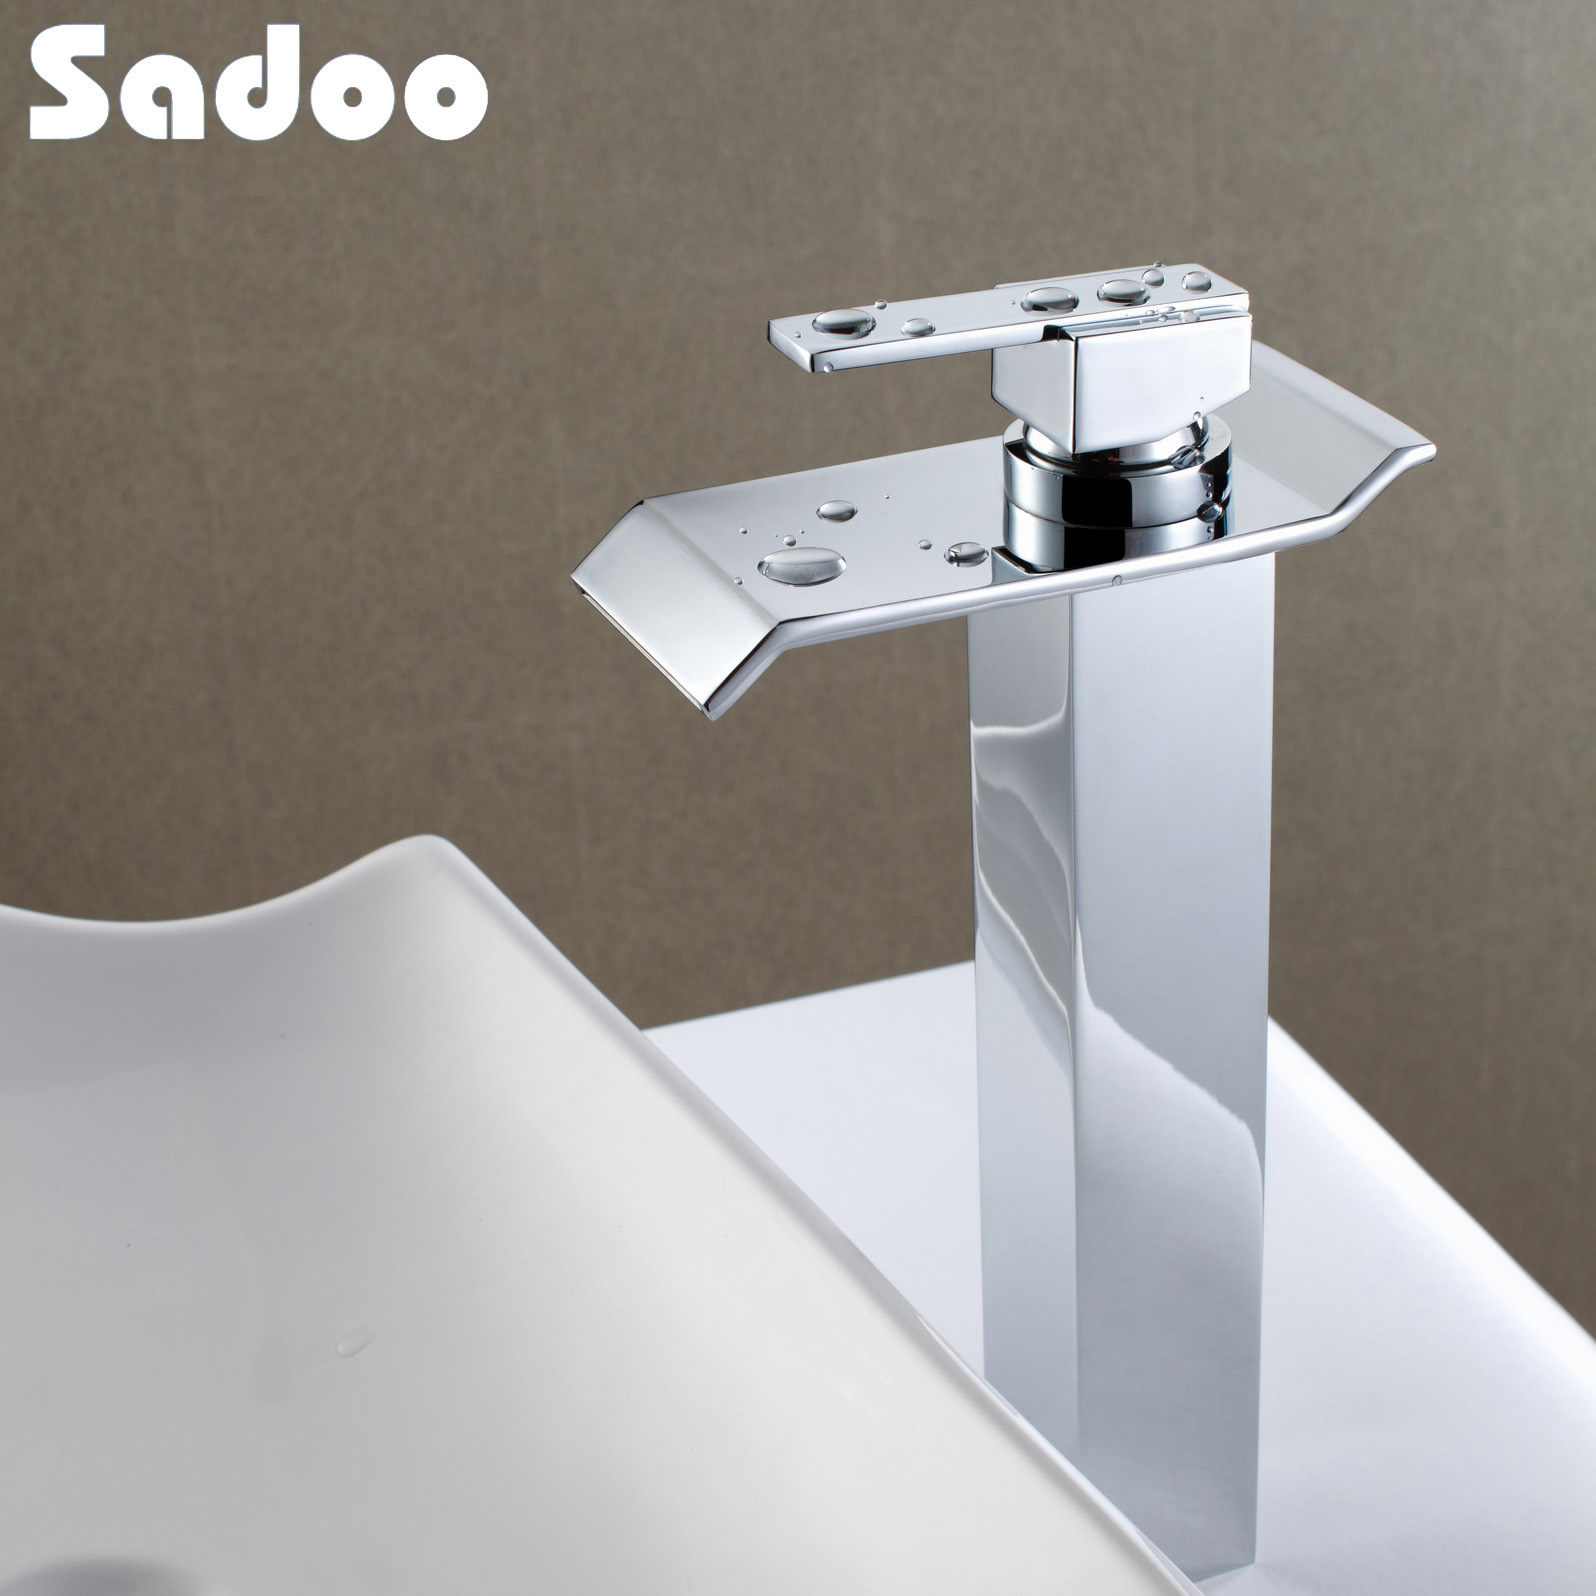 Water Faucet Bathroom : China Bathroom Brass Water Fall Basin Faucet SD-1003-1012 Photos ...